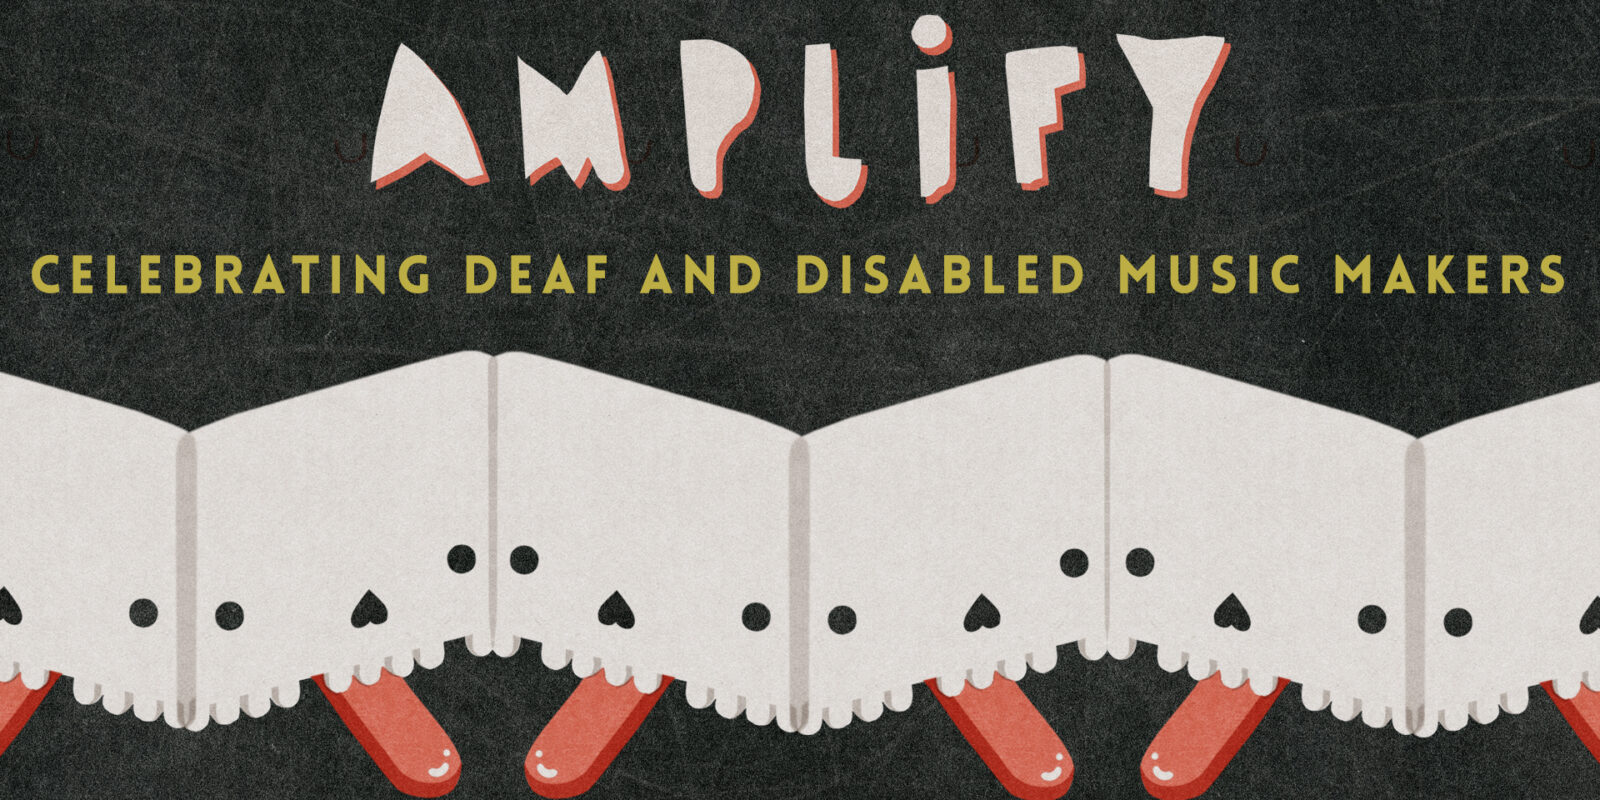 an acourdian of paper with eyes below the writing Aplify, Celerbrating Deaf and Siabled Music Makers.